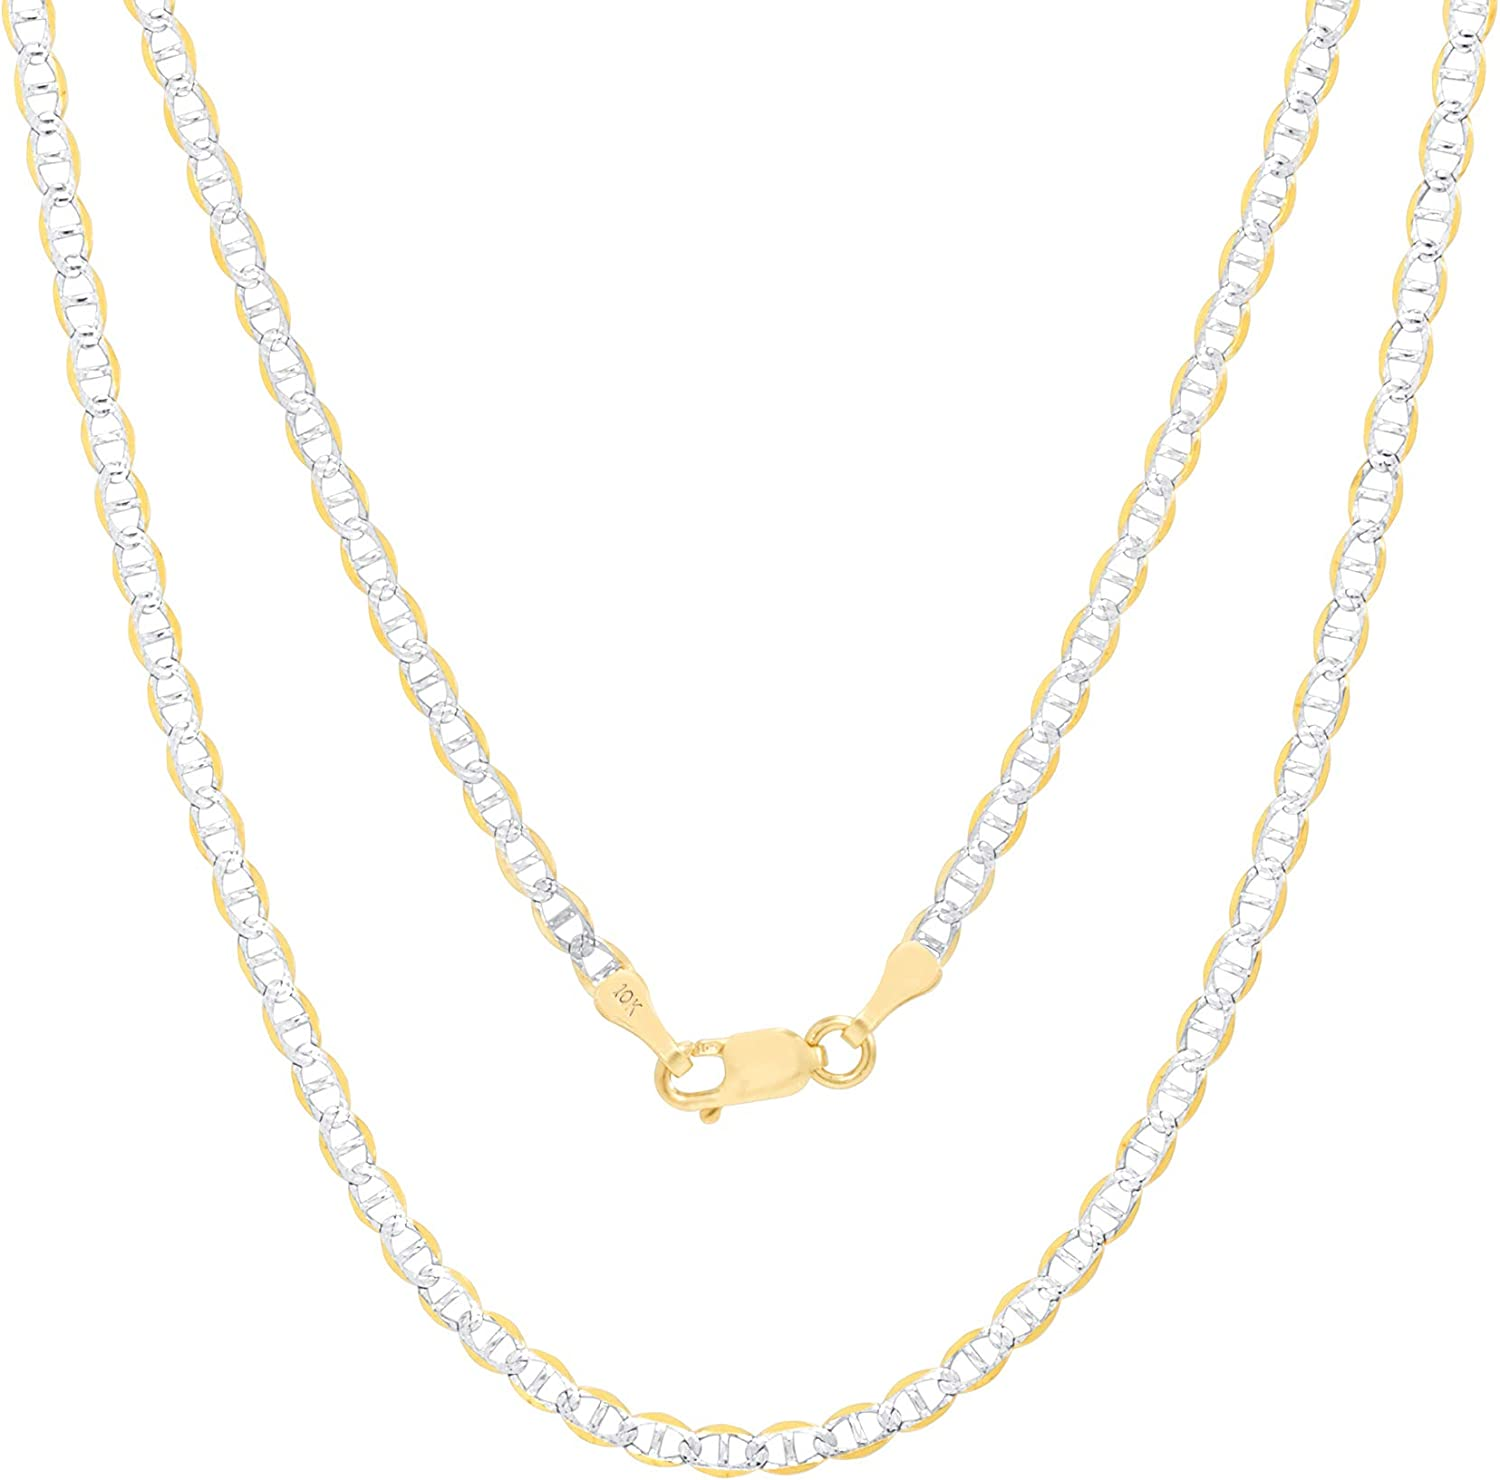 Nuragold 10k Yellow Gold 2.5mm Solid Mariner Anchor Link Chain Diamond Cut Two Tone Pave Pendant Necklace, Womens Mens Lobster Lock 16